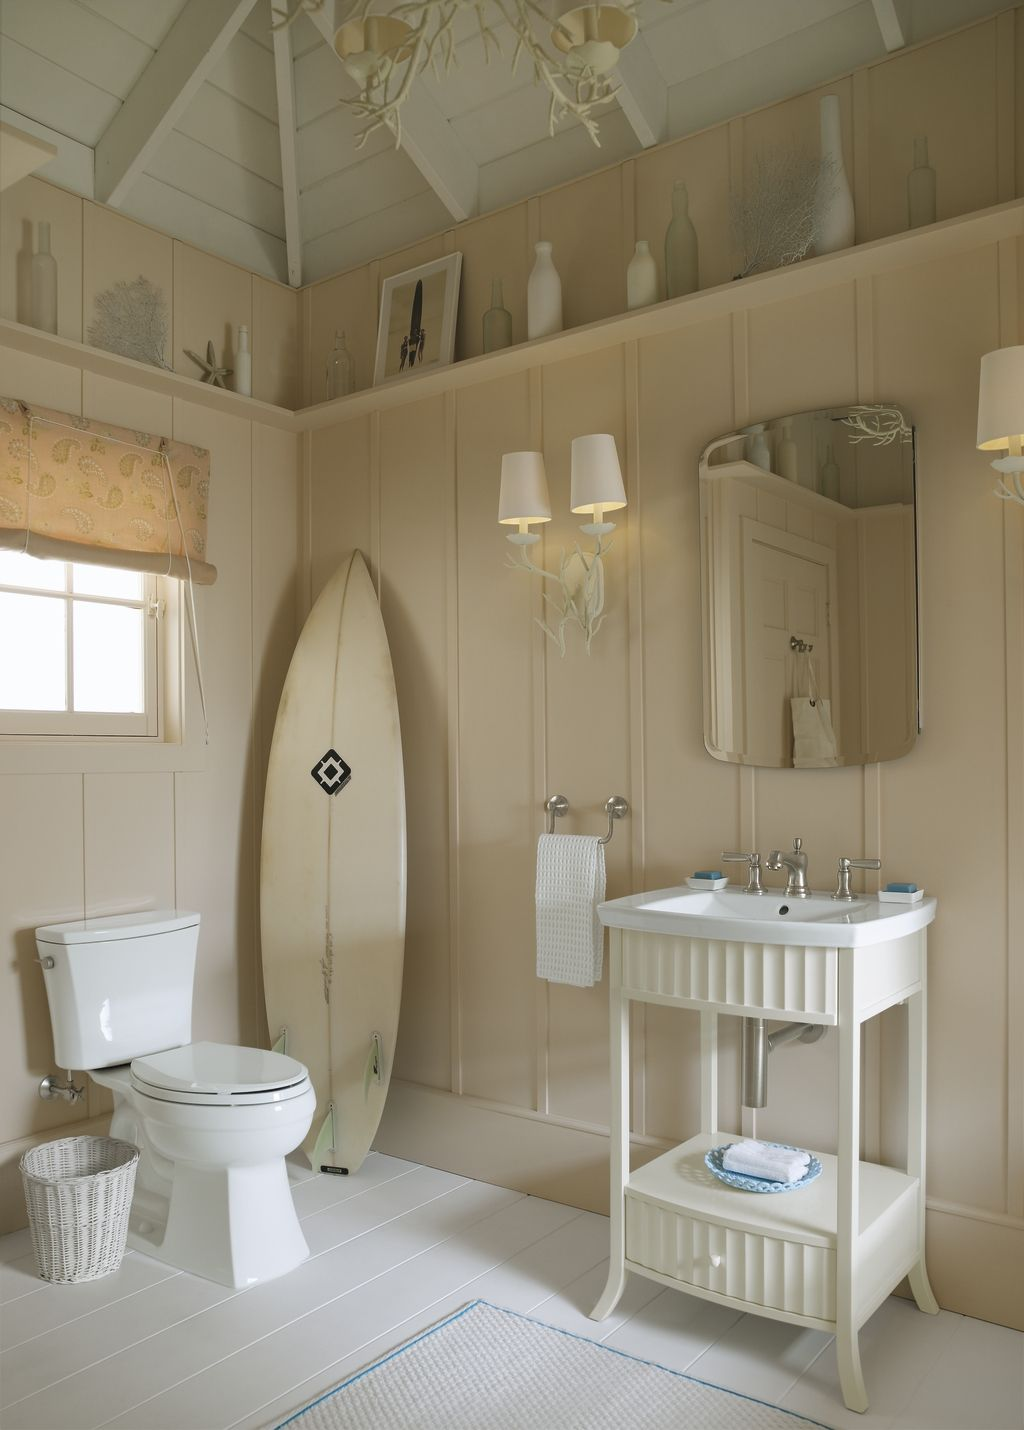 17 best images about nautical/beach bathroom and decor on